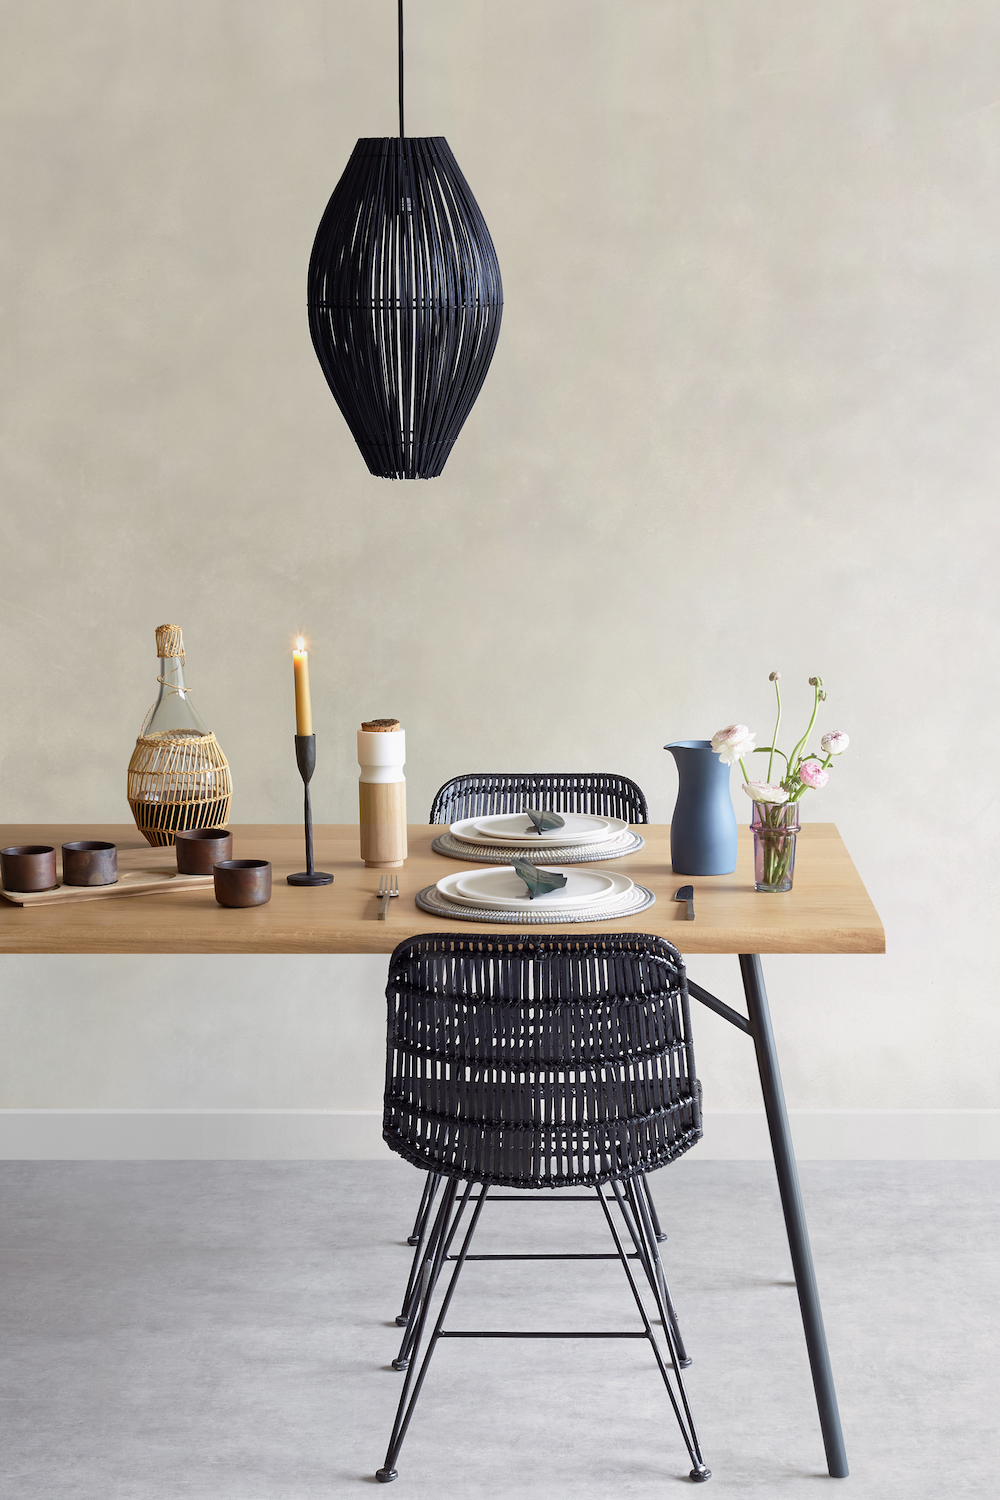 [oggetto] Black fish trap pendant light, £75, candle holder, £20, Chesil dining table, from £2,150, ceramic blue carafe, £48, woven placemats, £5.50.jpg